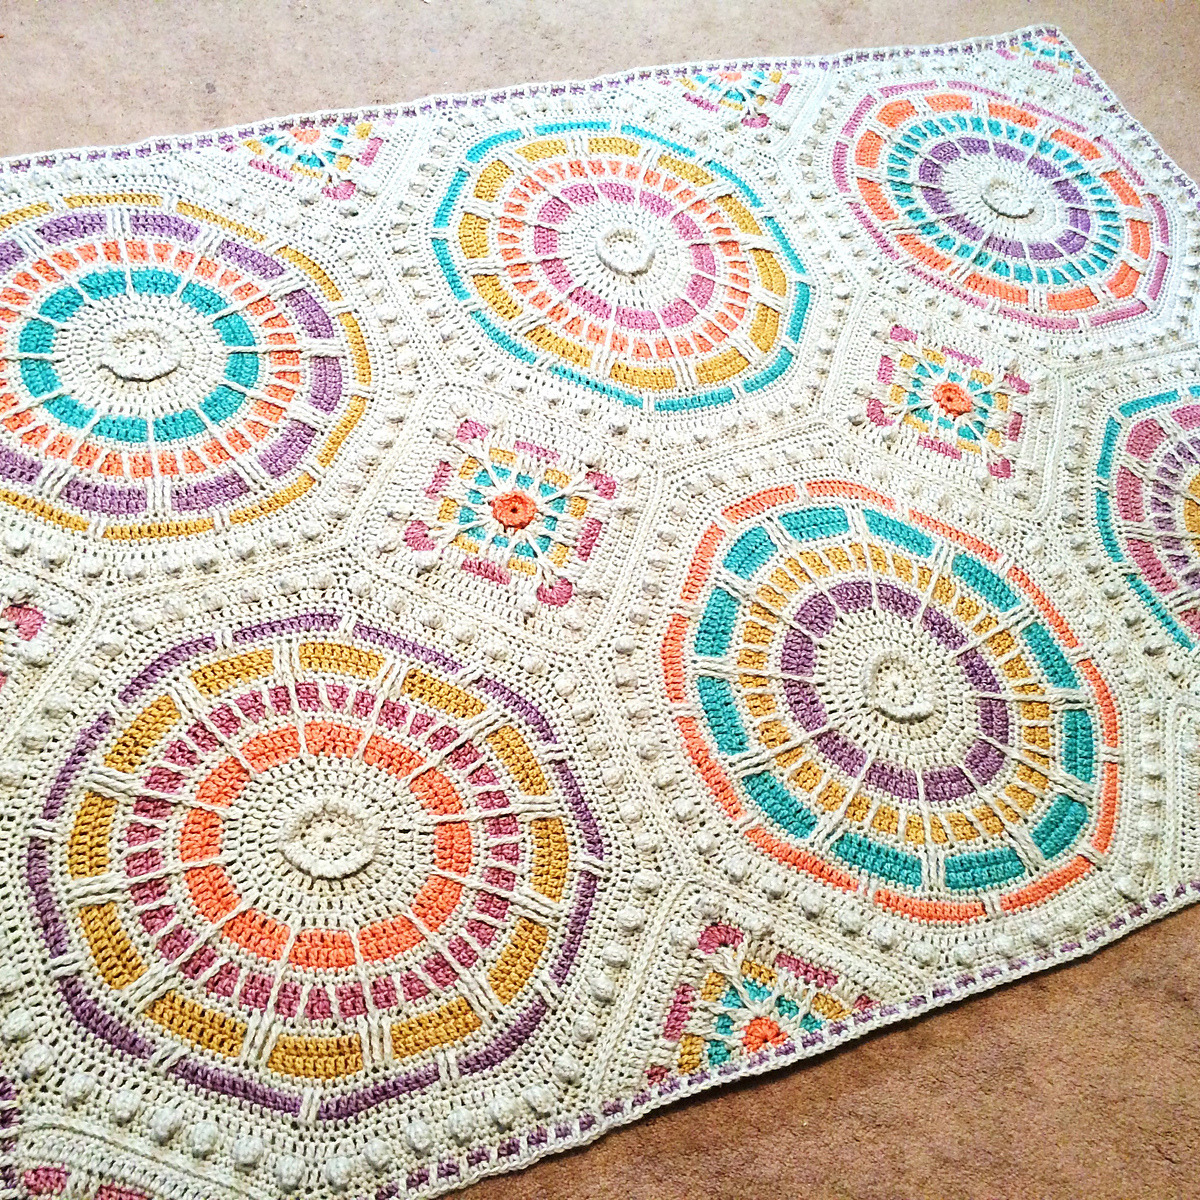 Scheepjes Stone Washed Xl Summer Mosaic Afghan Kit Crochet For